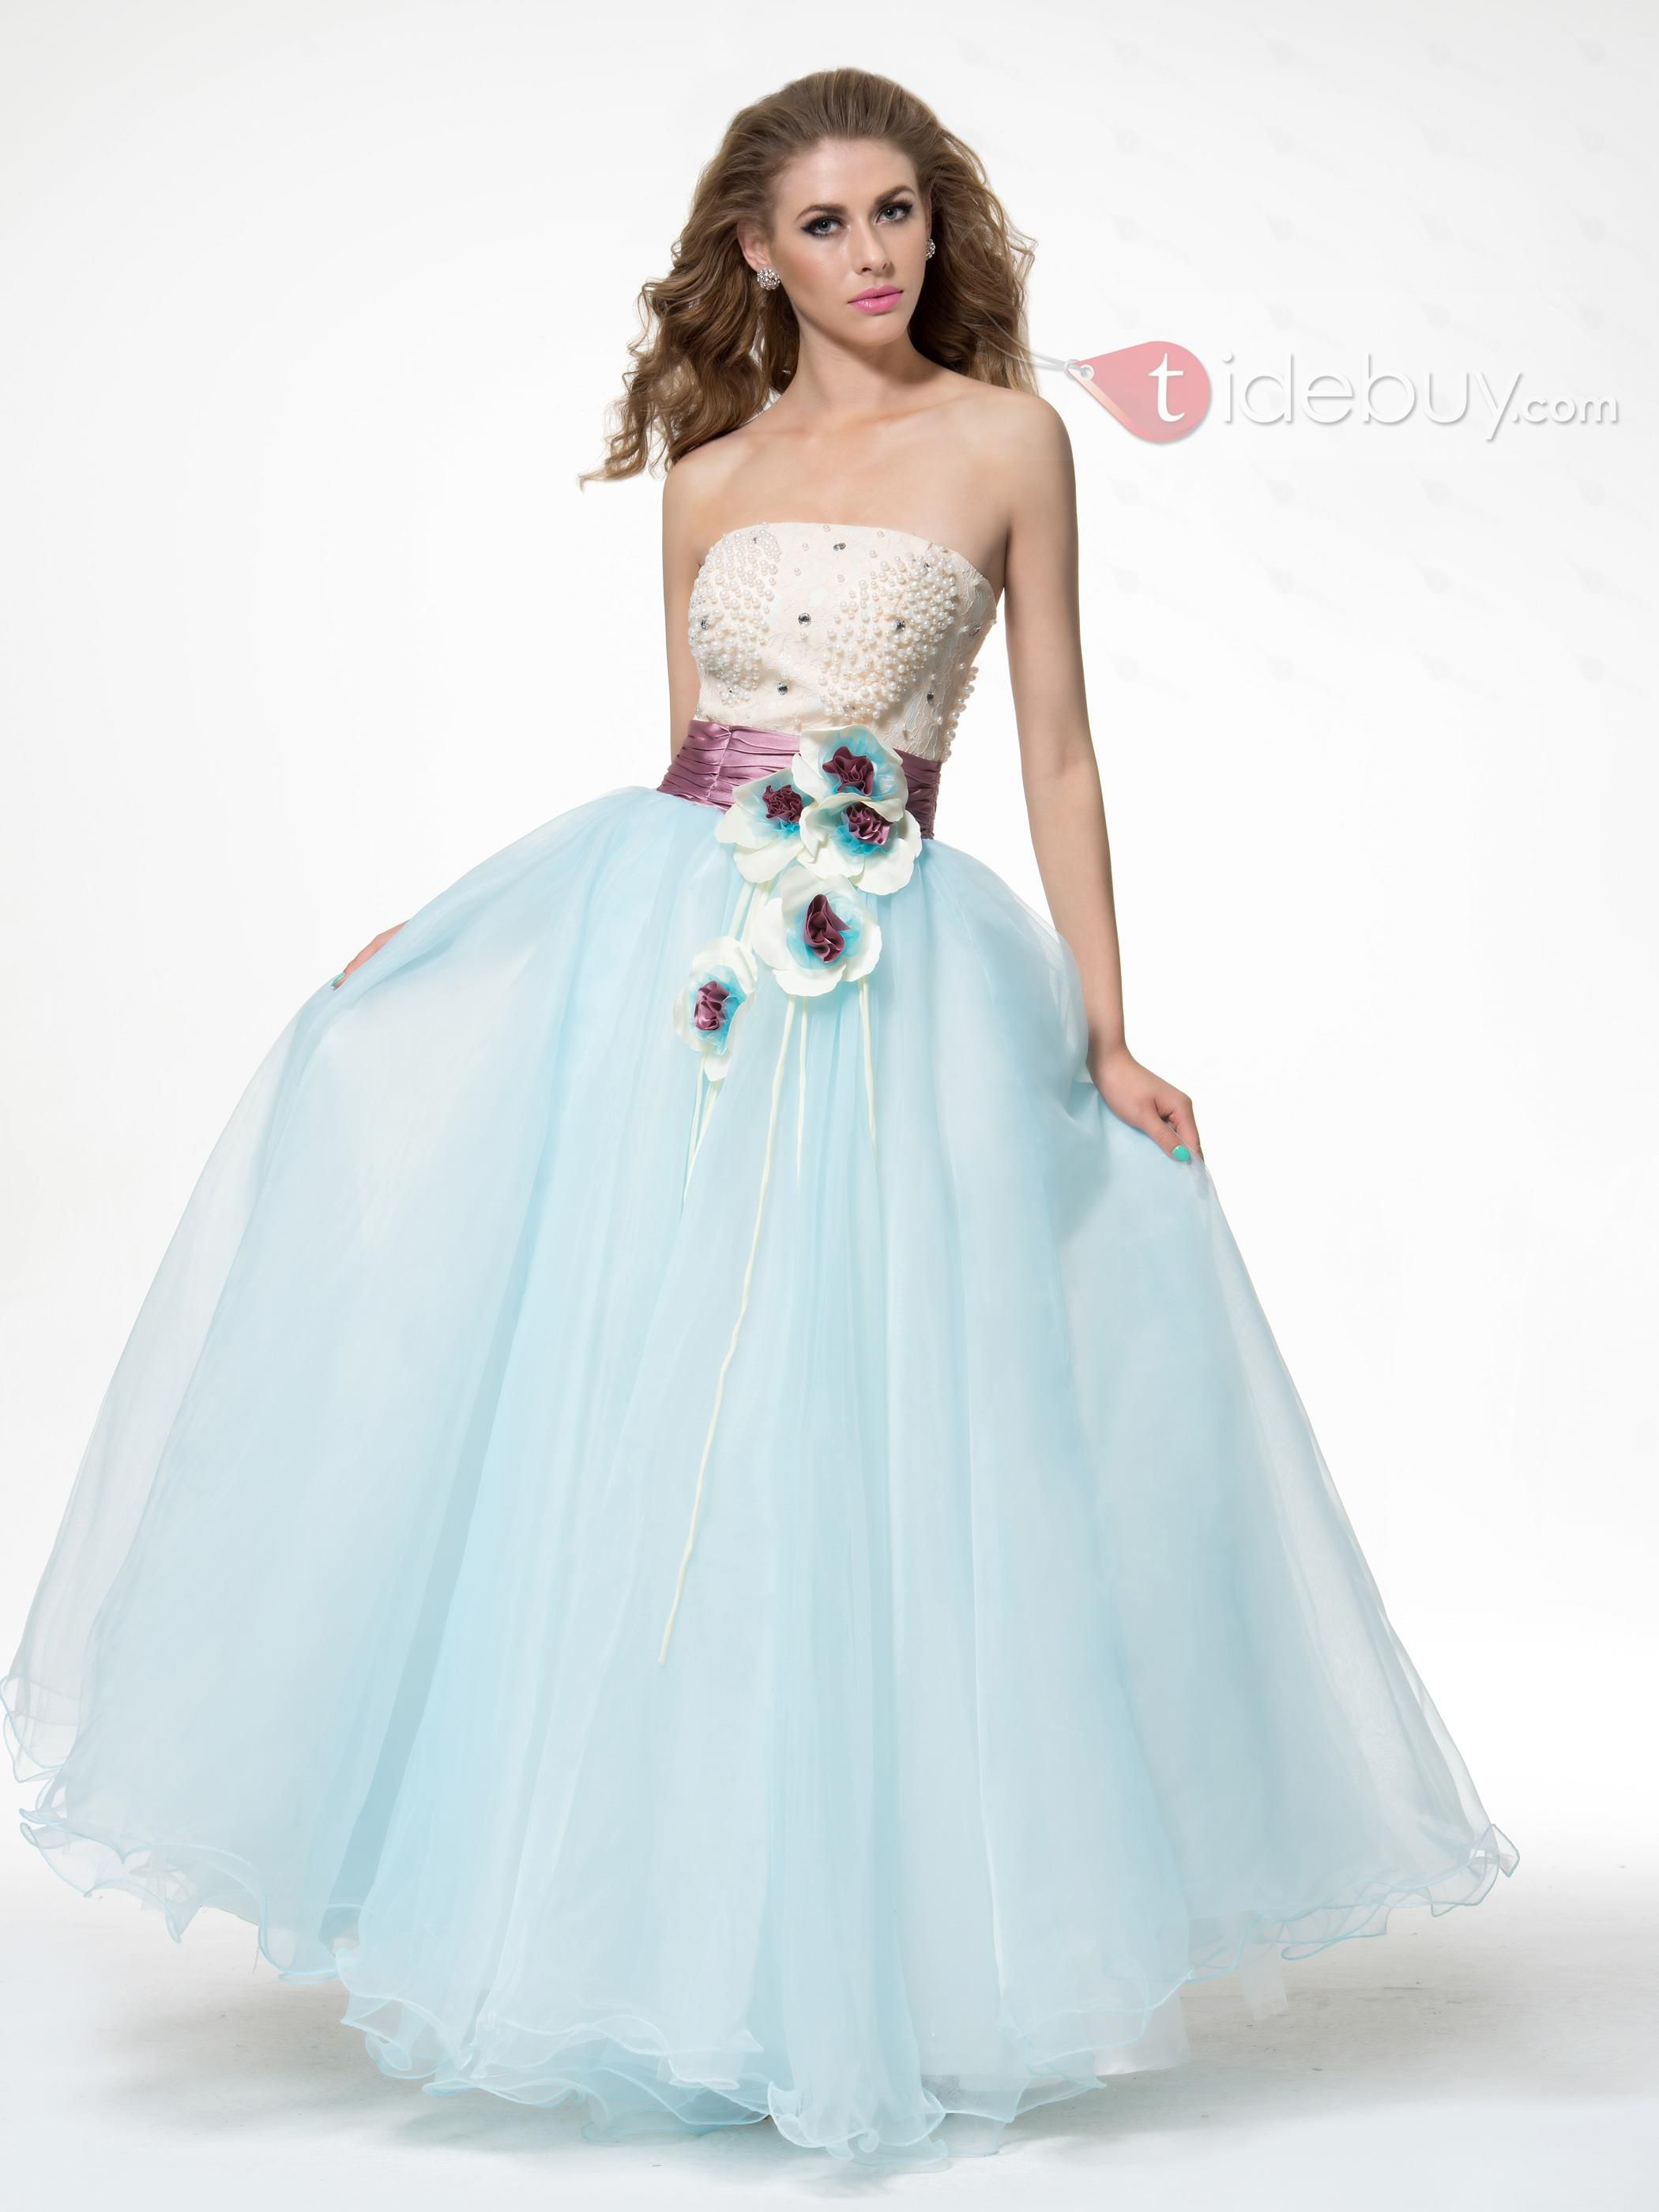 http://www.tidebuy.com/c/Ball-Gown-Dresses-7921/New-Arrival/3 ...